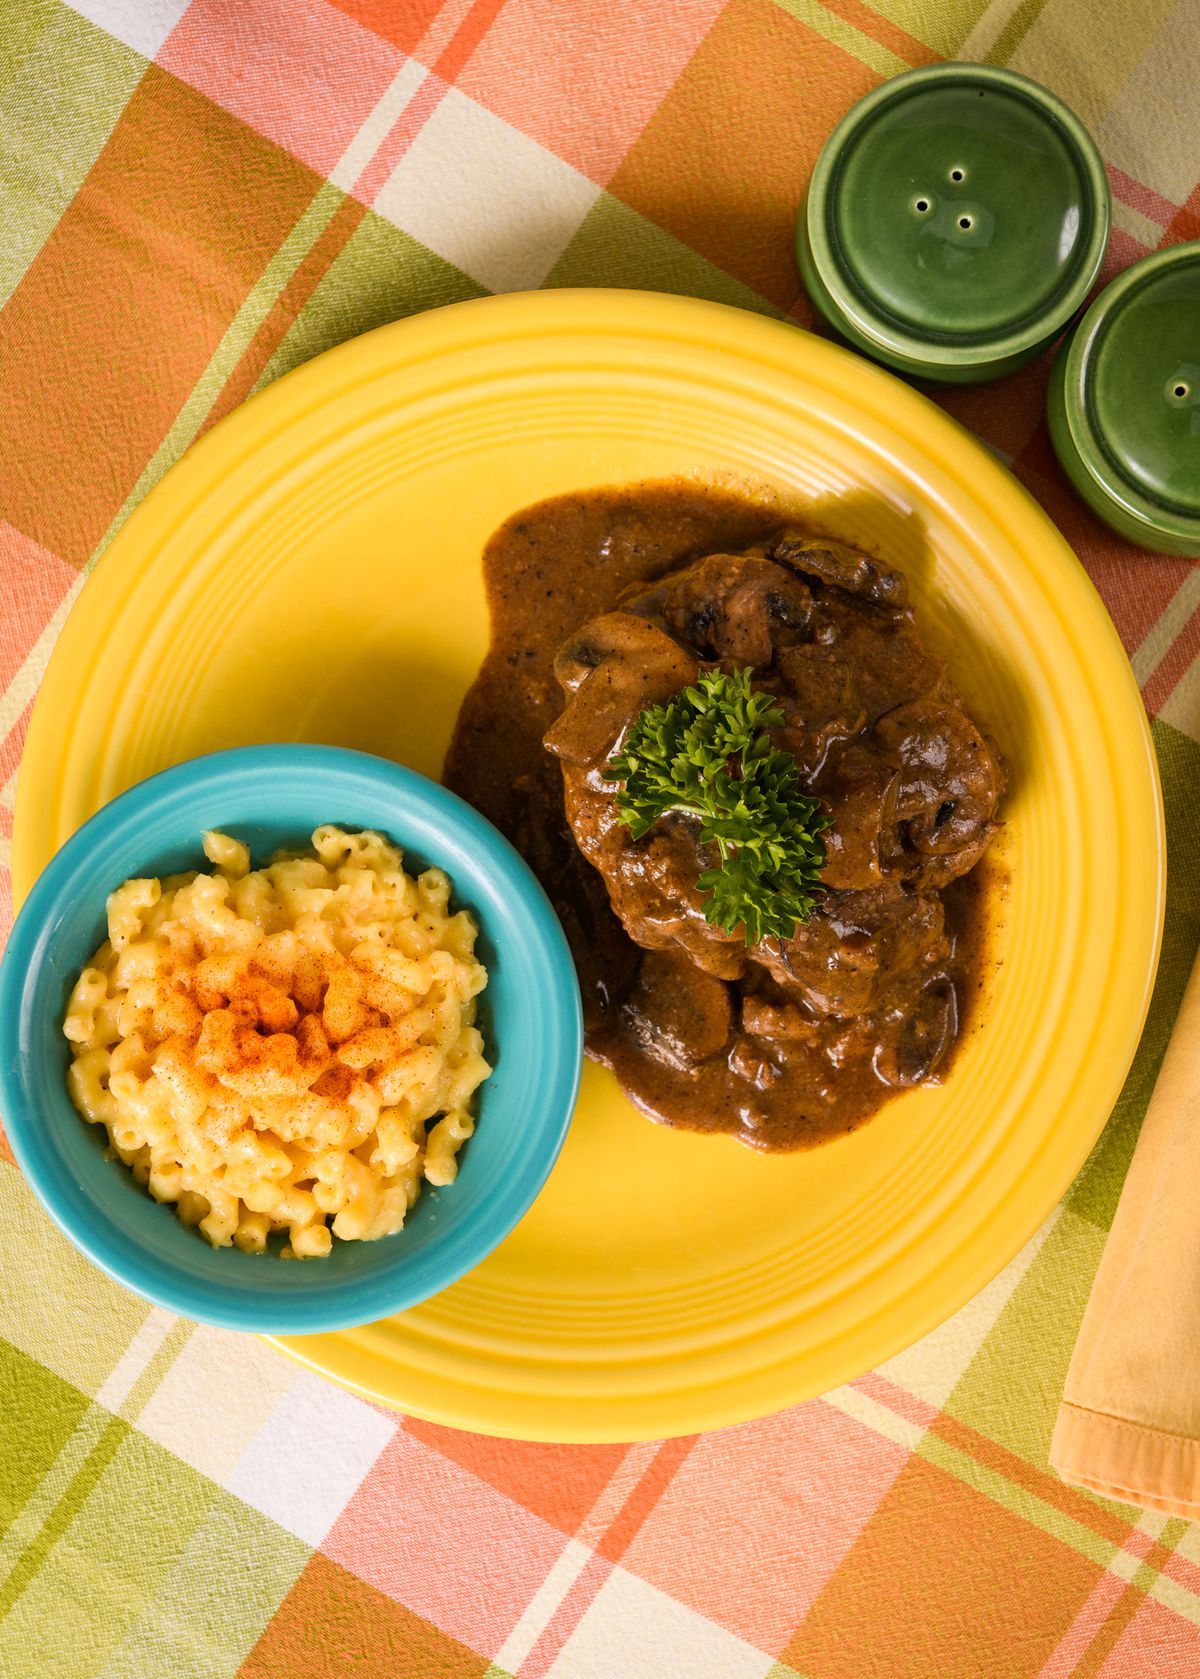 Picture of salisbury steak and macaroni and cheese